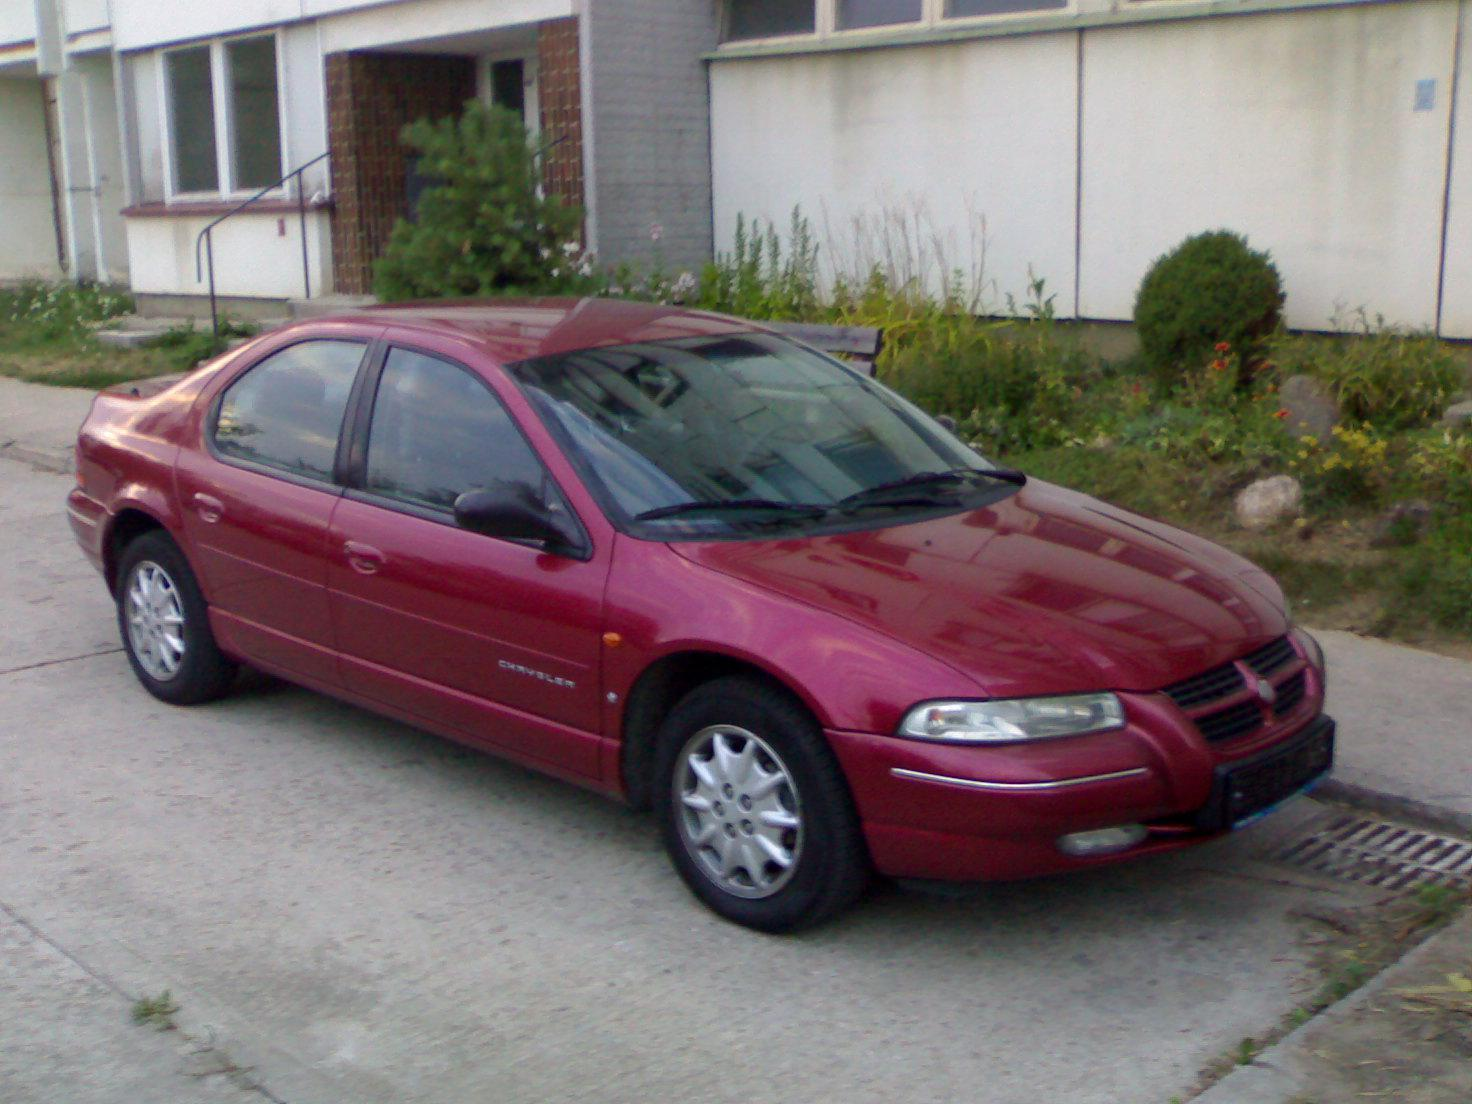 Chrysler stratus 2.0 le